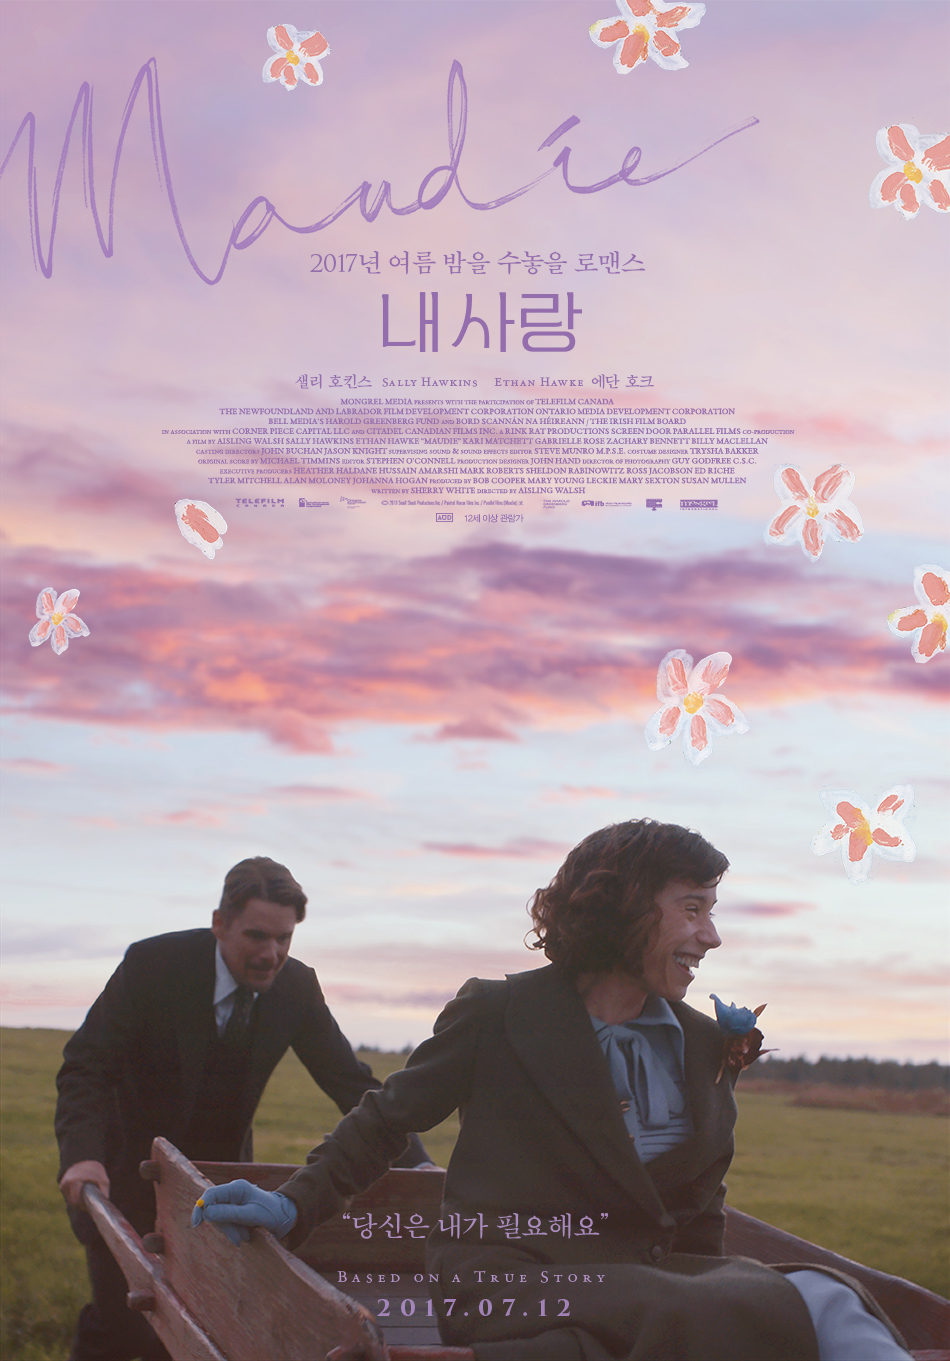 내 사랑 (Maudie, My Love, 2017)